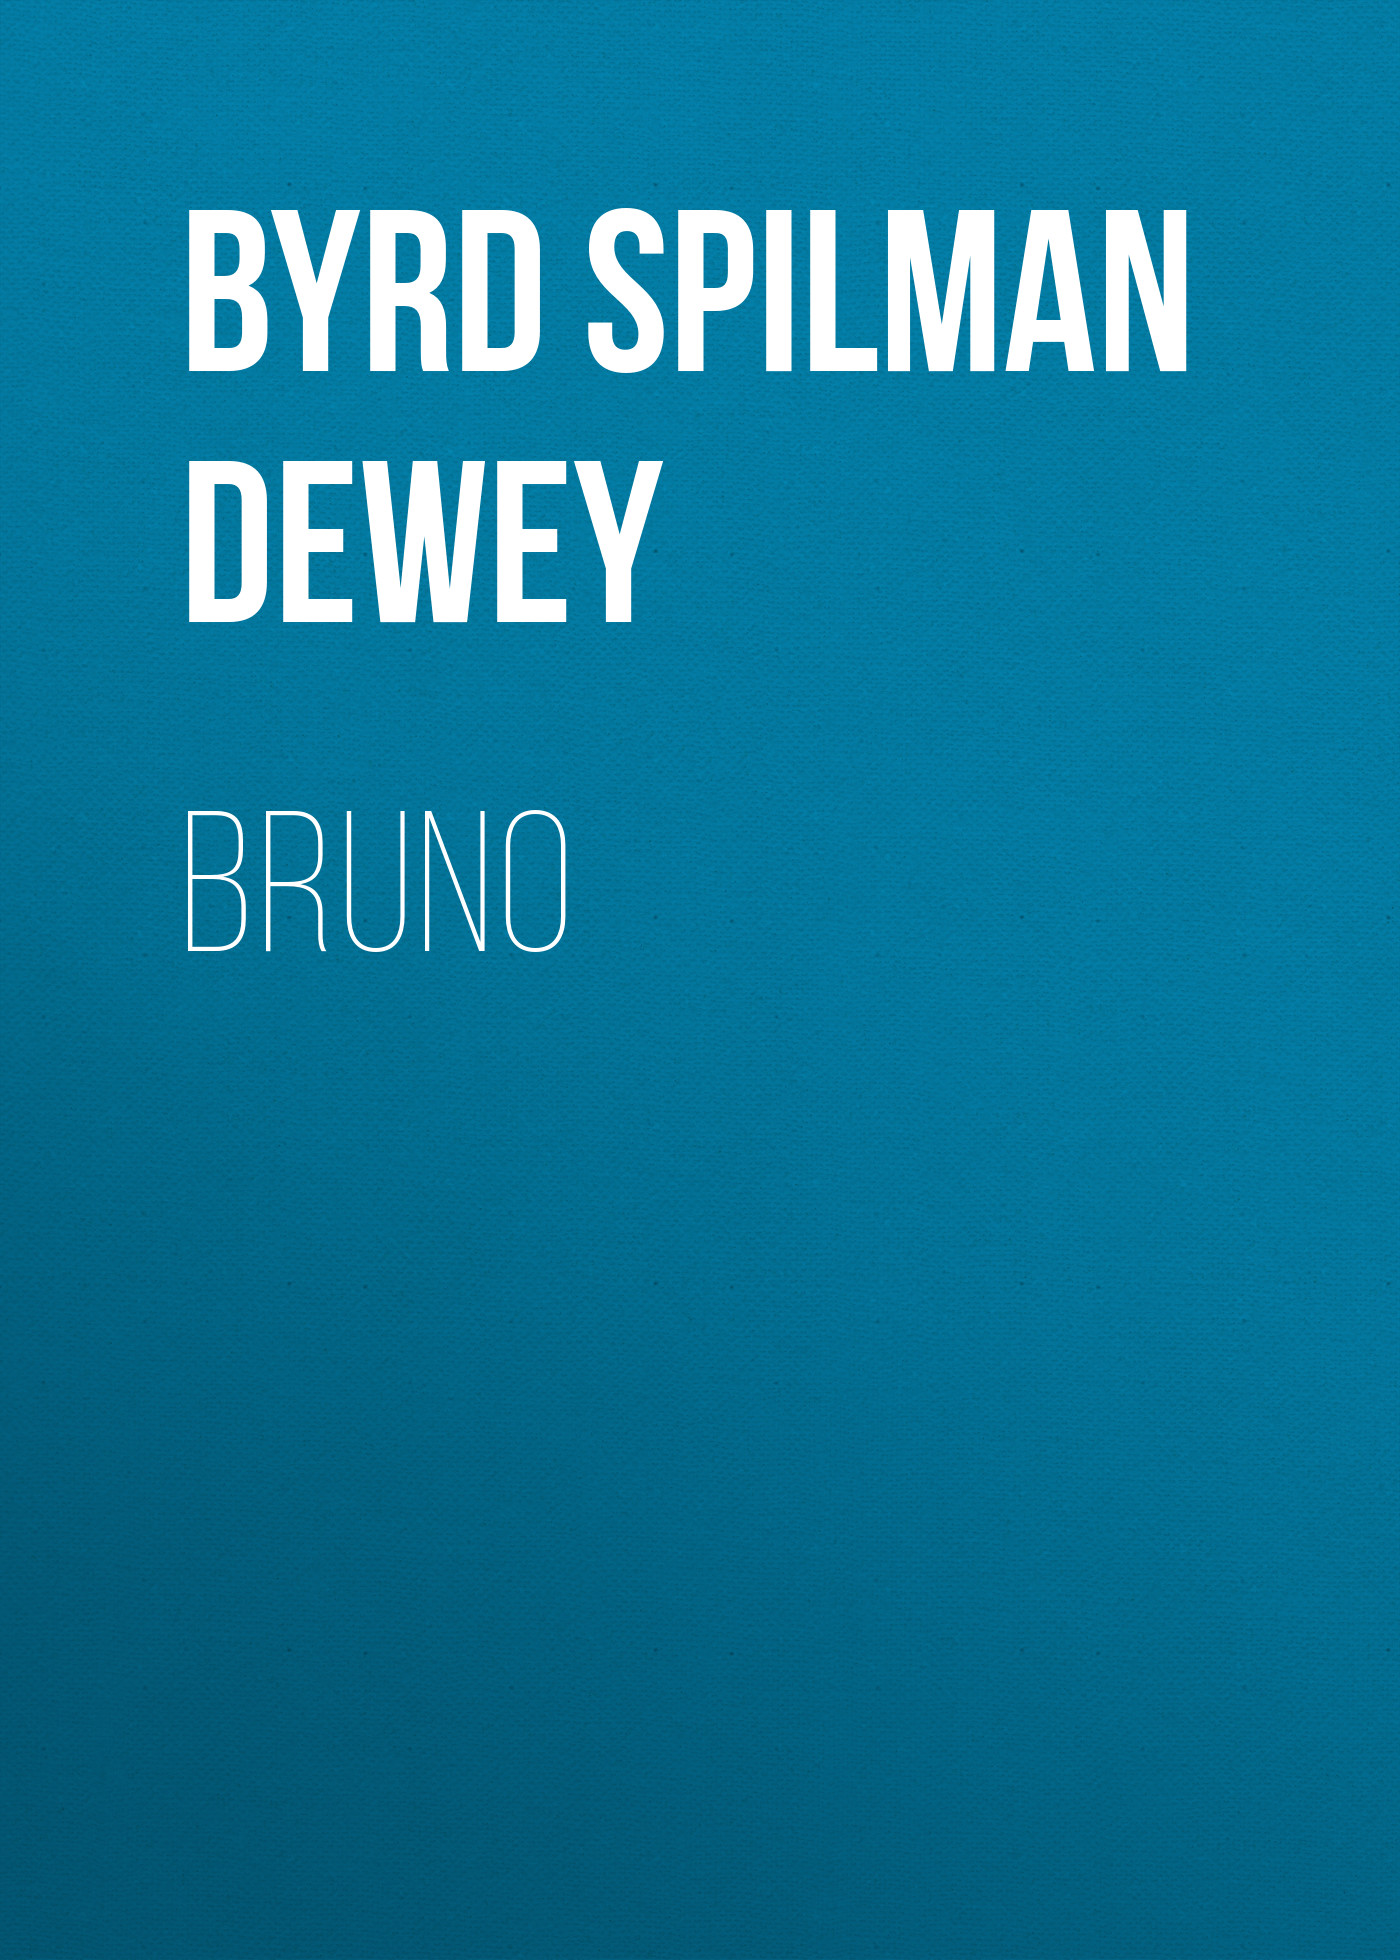 Byrd Spilman Dewey Bruno donald byrd quintet donald byrd quintet parisian thoroughfare